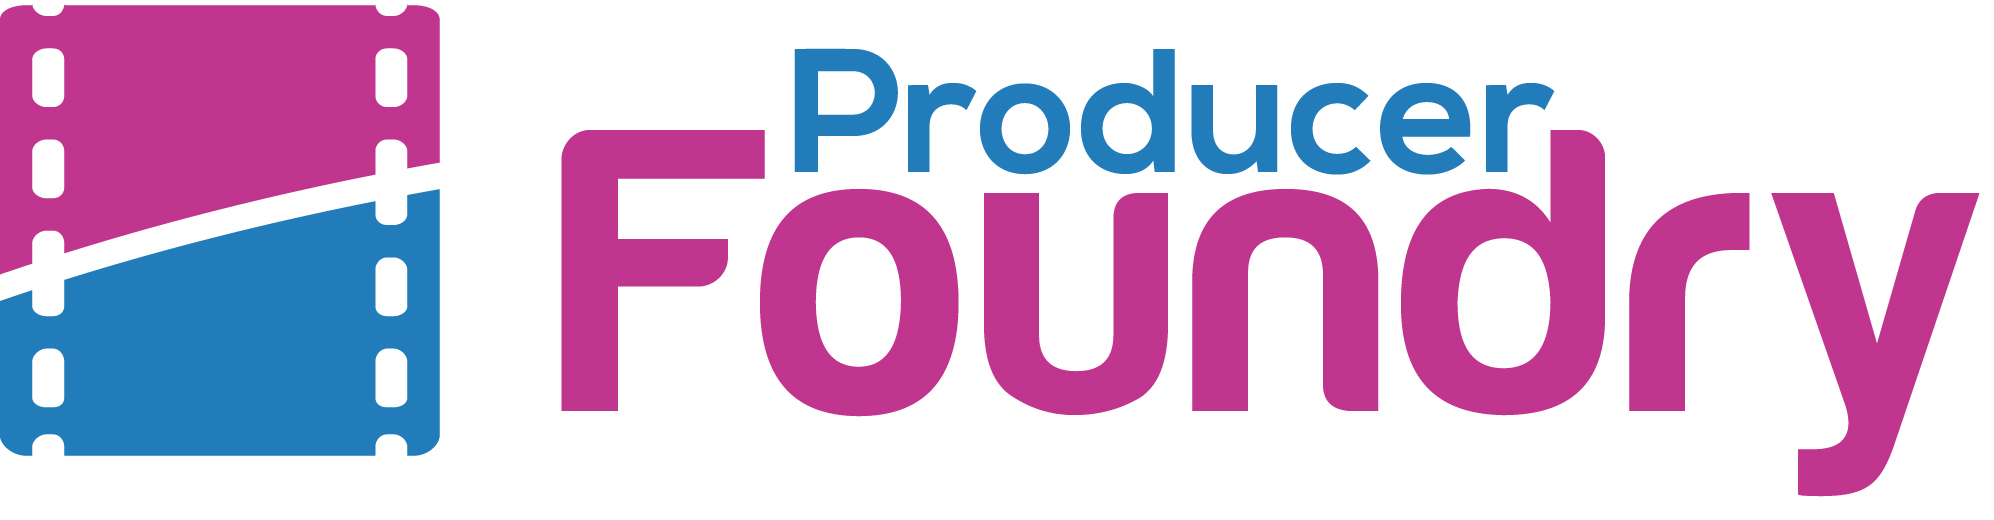 Producer Foundry Logo